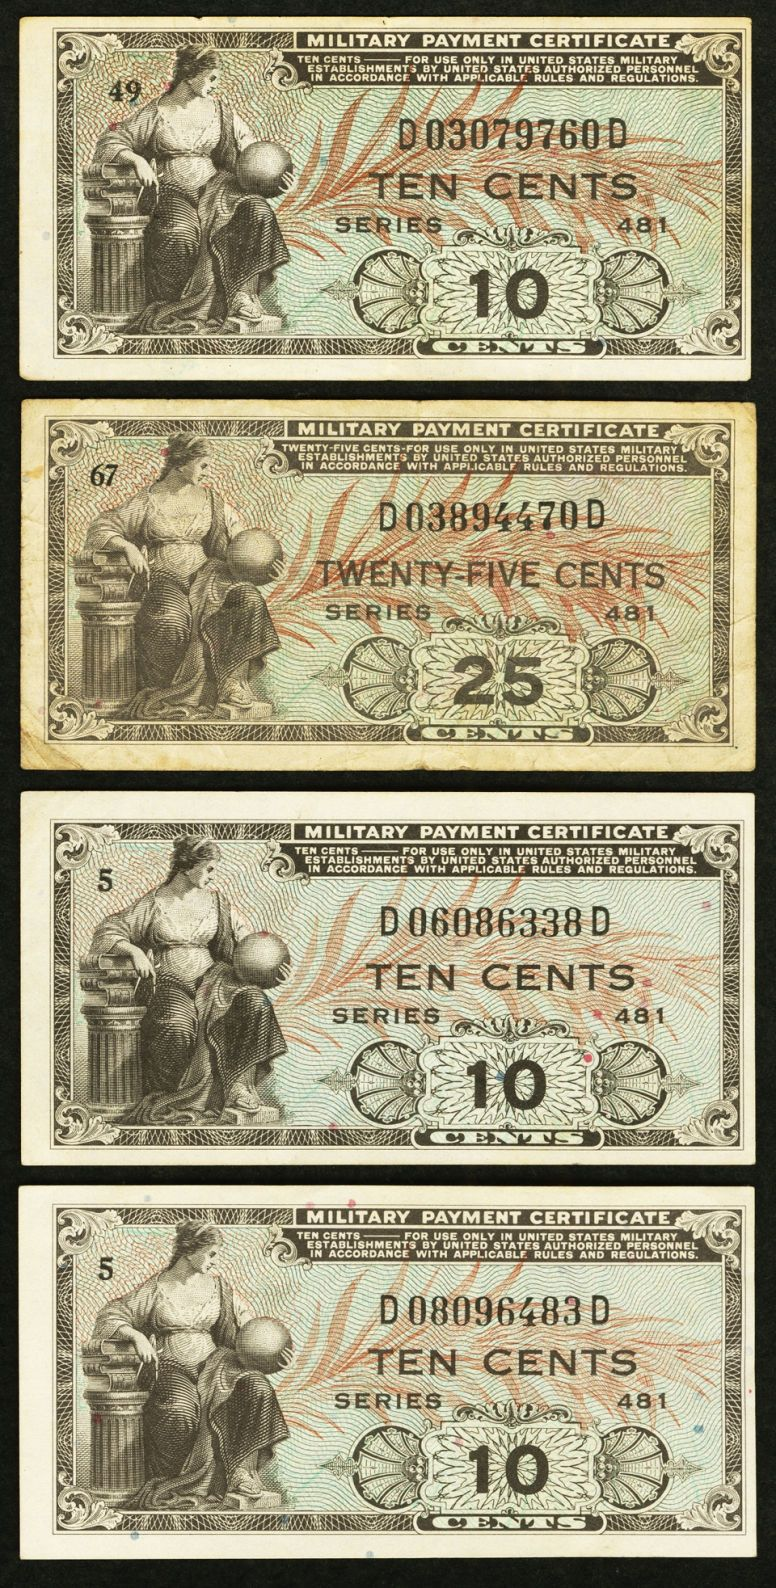 Series 481 Two Different Denominations 10 First Printing Vf Light